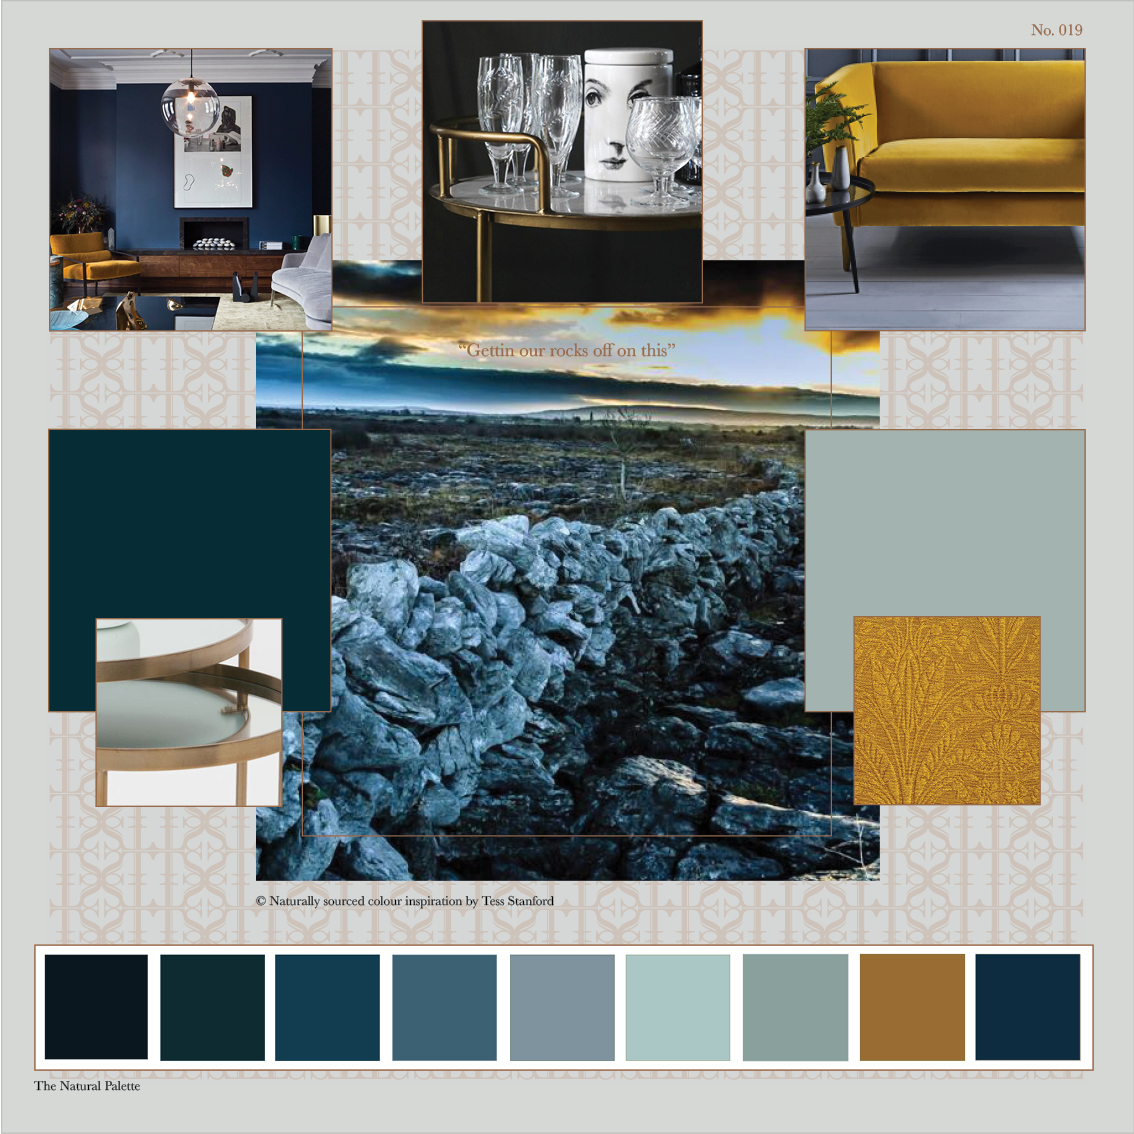 Tess Stanford Interior Design Colour Inspiration Blog No 019